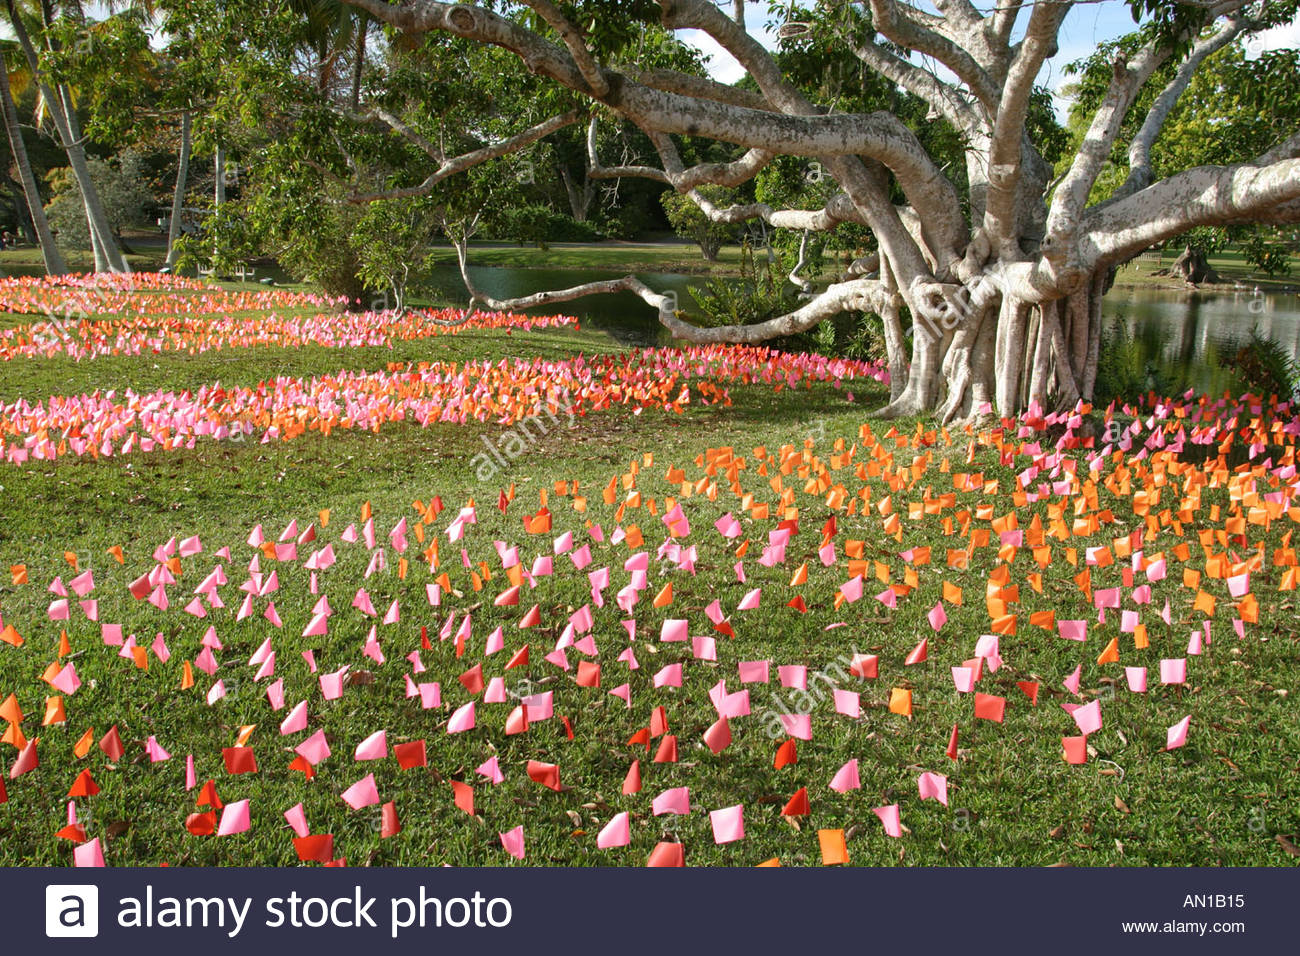 Coral Gables Miami Florida Fairchild Tropical Botanic Garden Flower Square  Art Installation Flags Represent Brushstrokes Ficus Tree